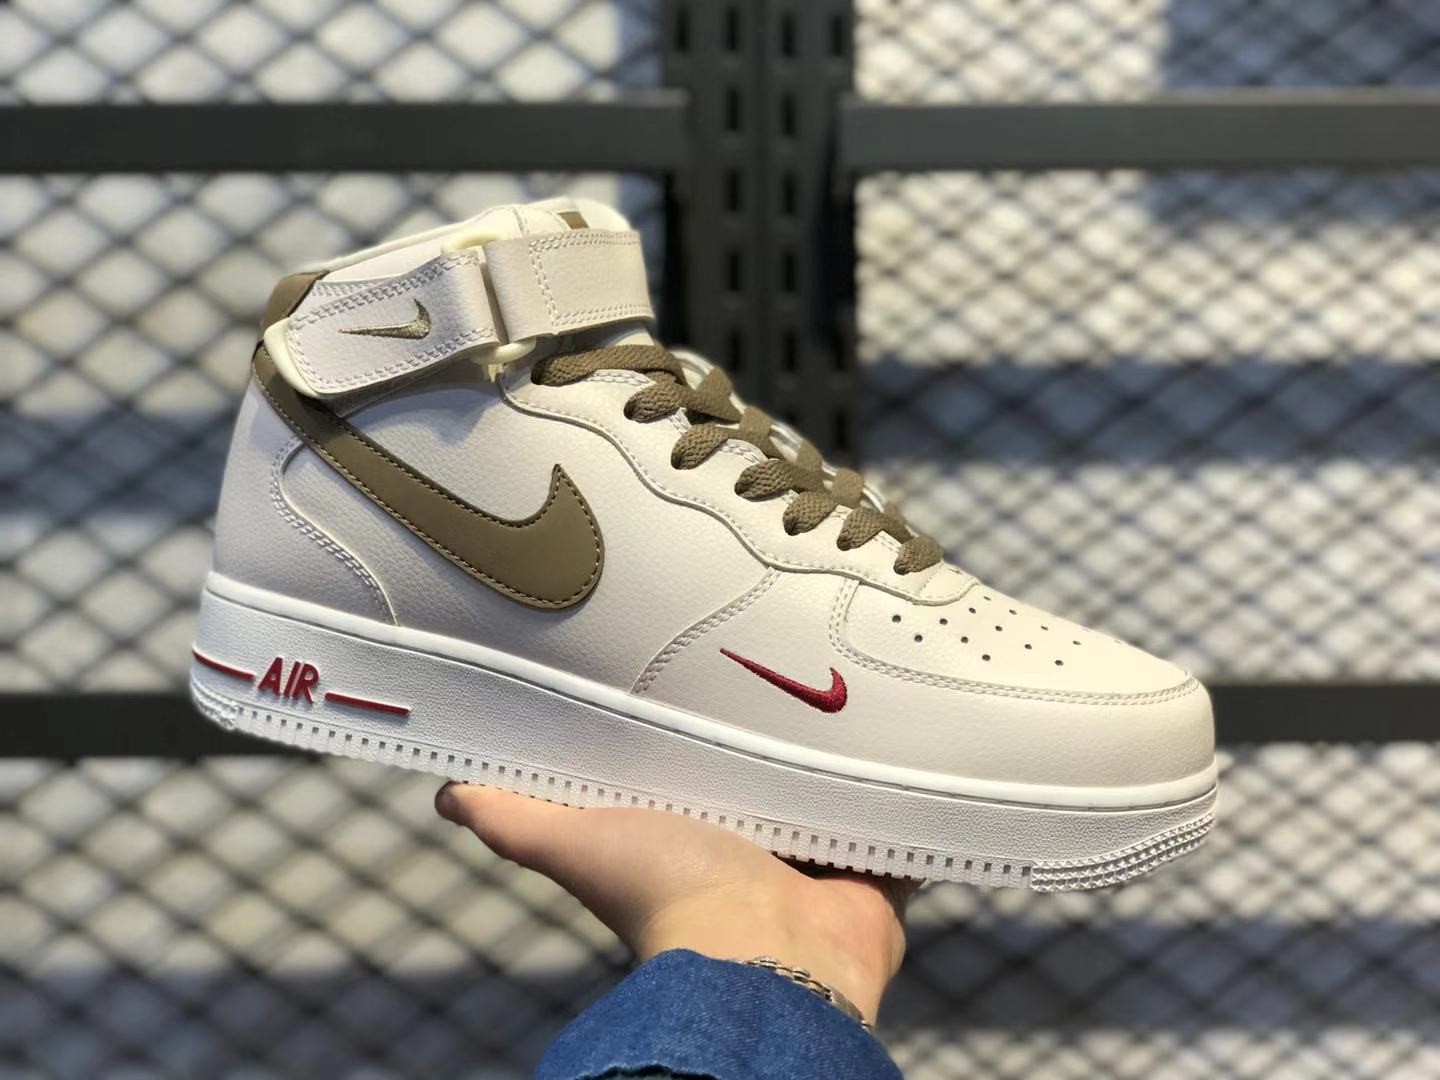 2020 Newest Nike WMNS Air Force 1 High White/Brown-Red Casual Shoes 808788-995